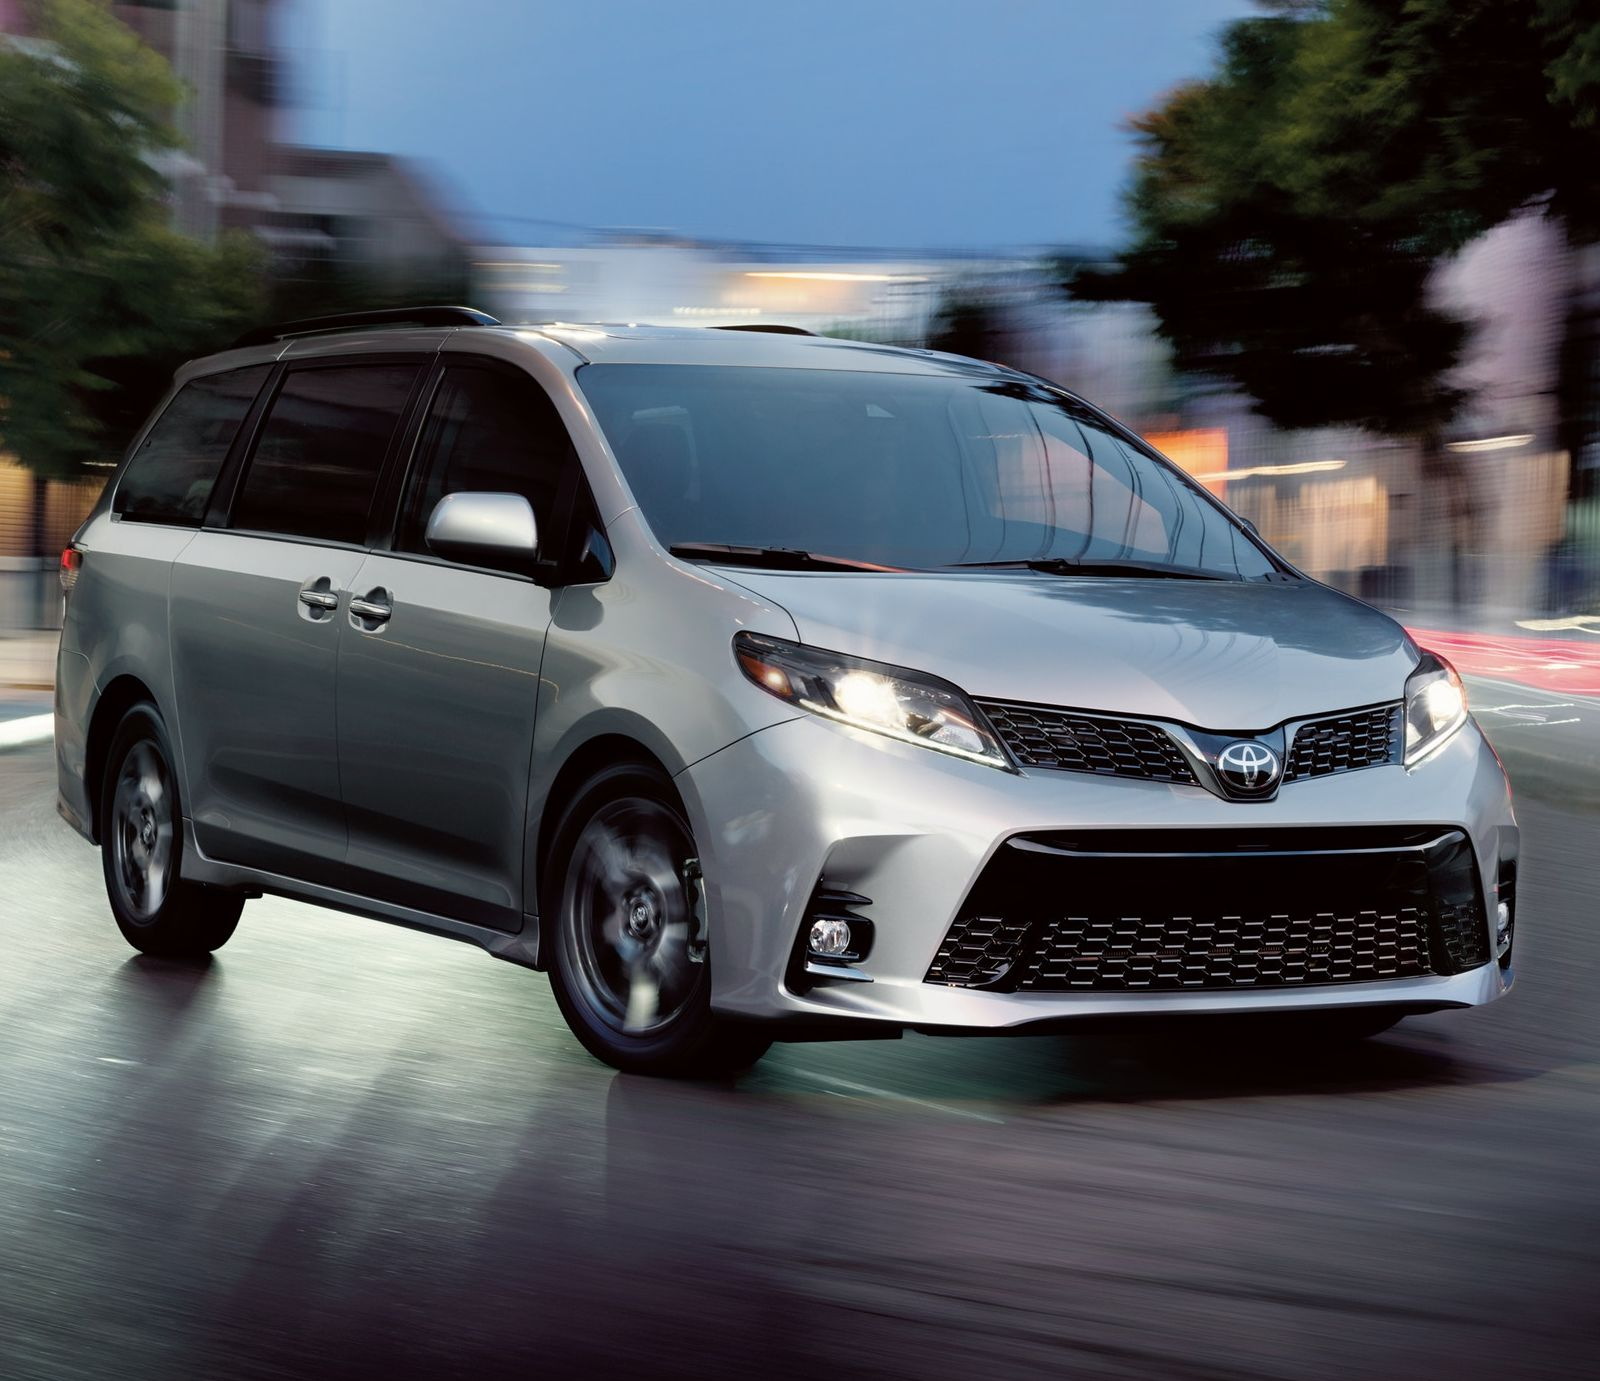 2020 Toyota Sienna Leasing near Des Moines, IA